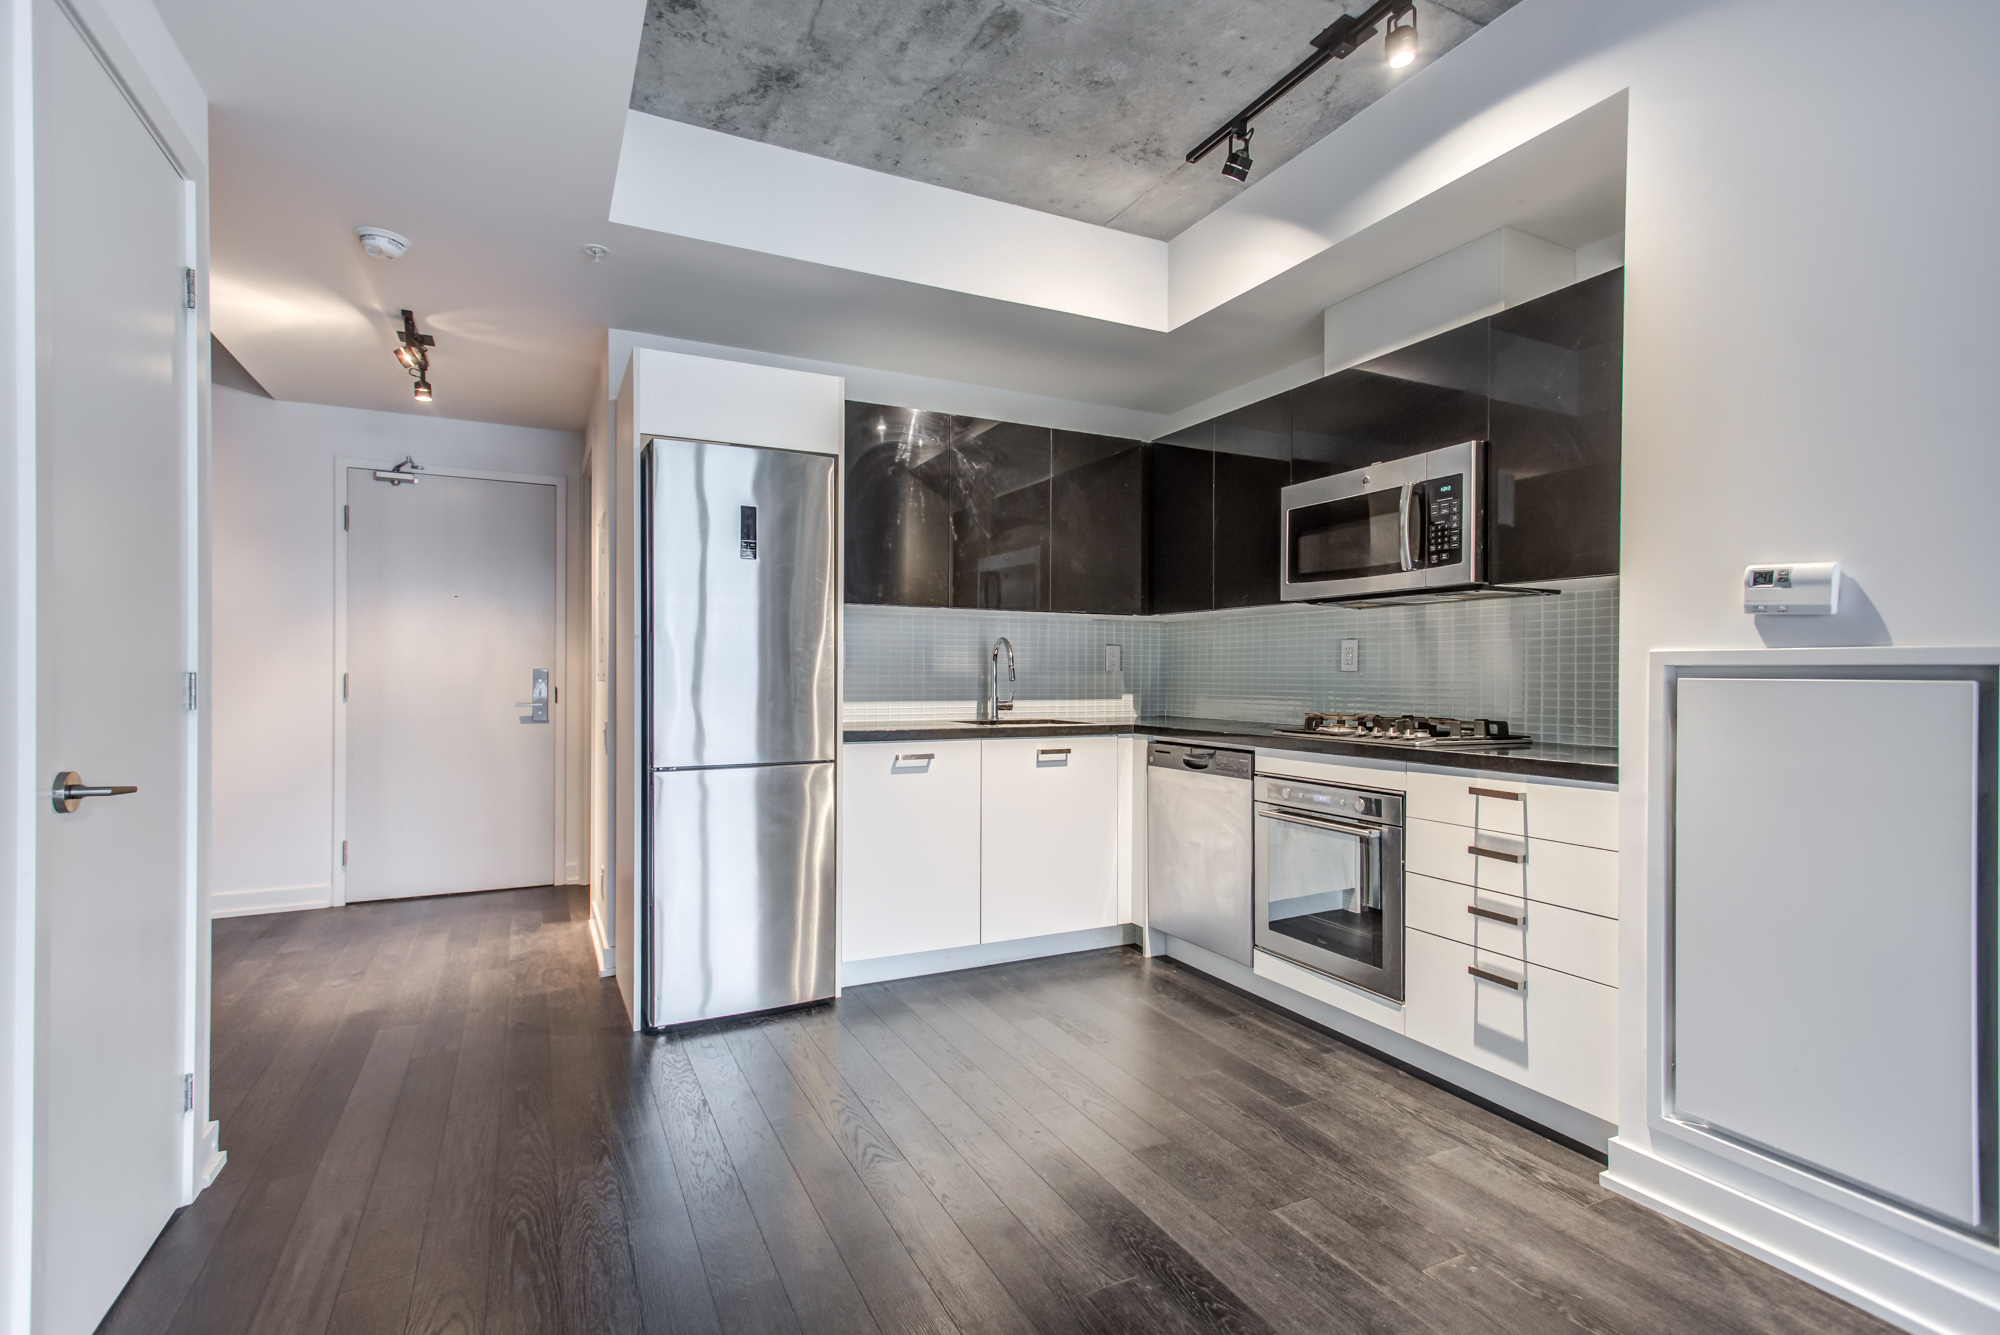 Condo with laminate floors and exposed concrete at 39 Brant St Unit 918, Brant Park Lofts, Queen West.